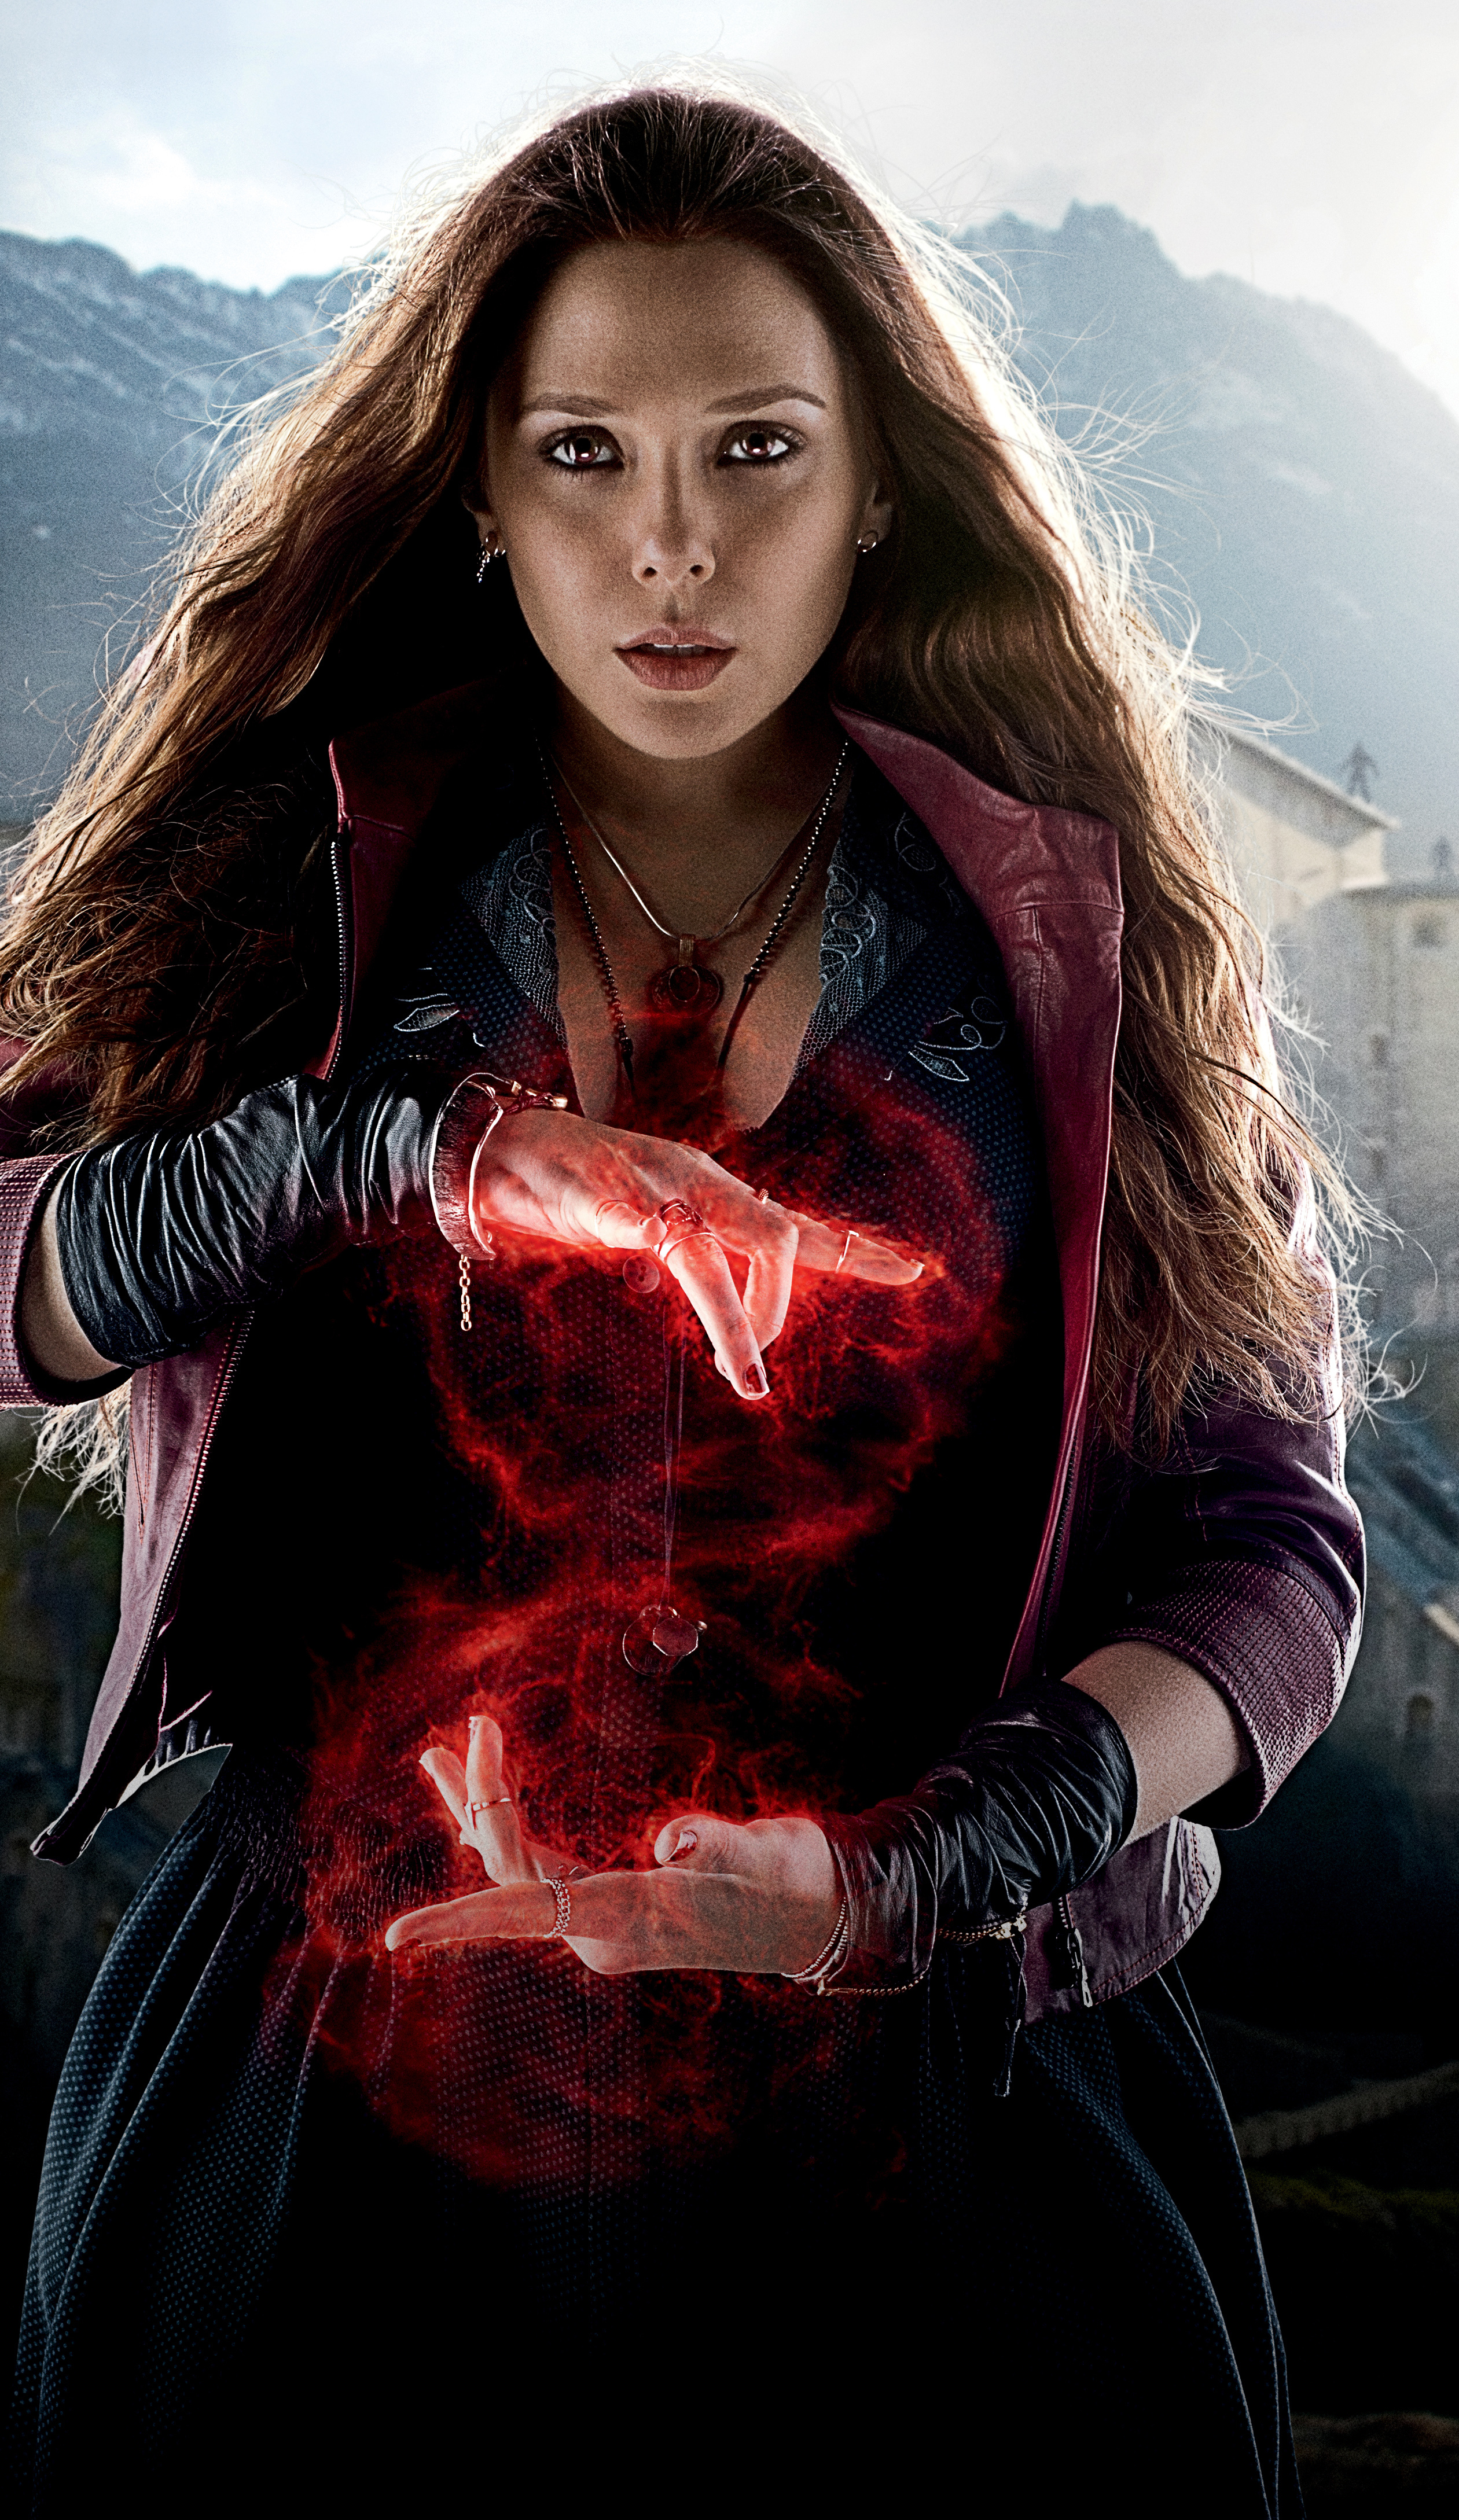 Quicksilver and scarlet witch incest